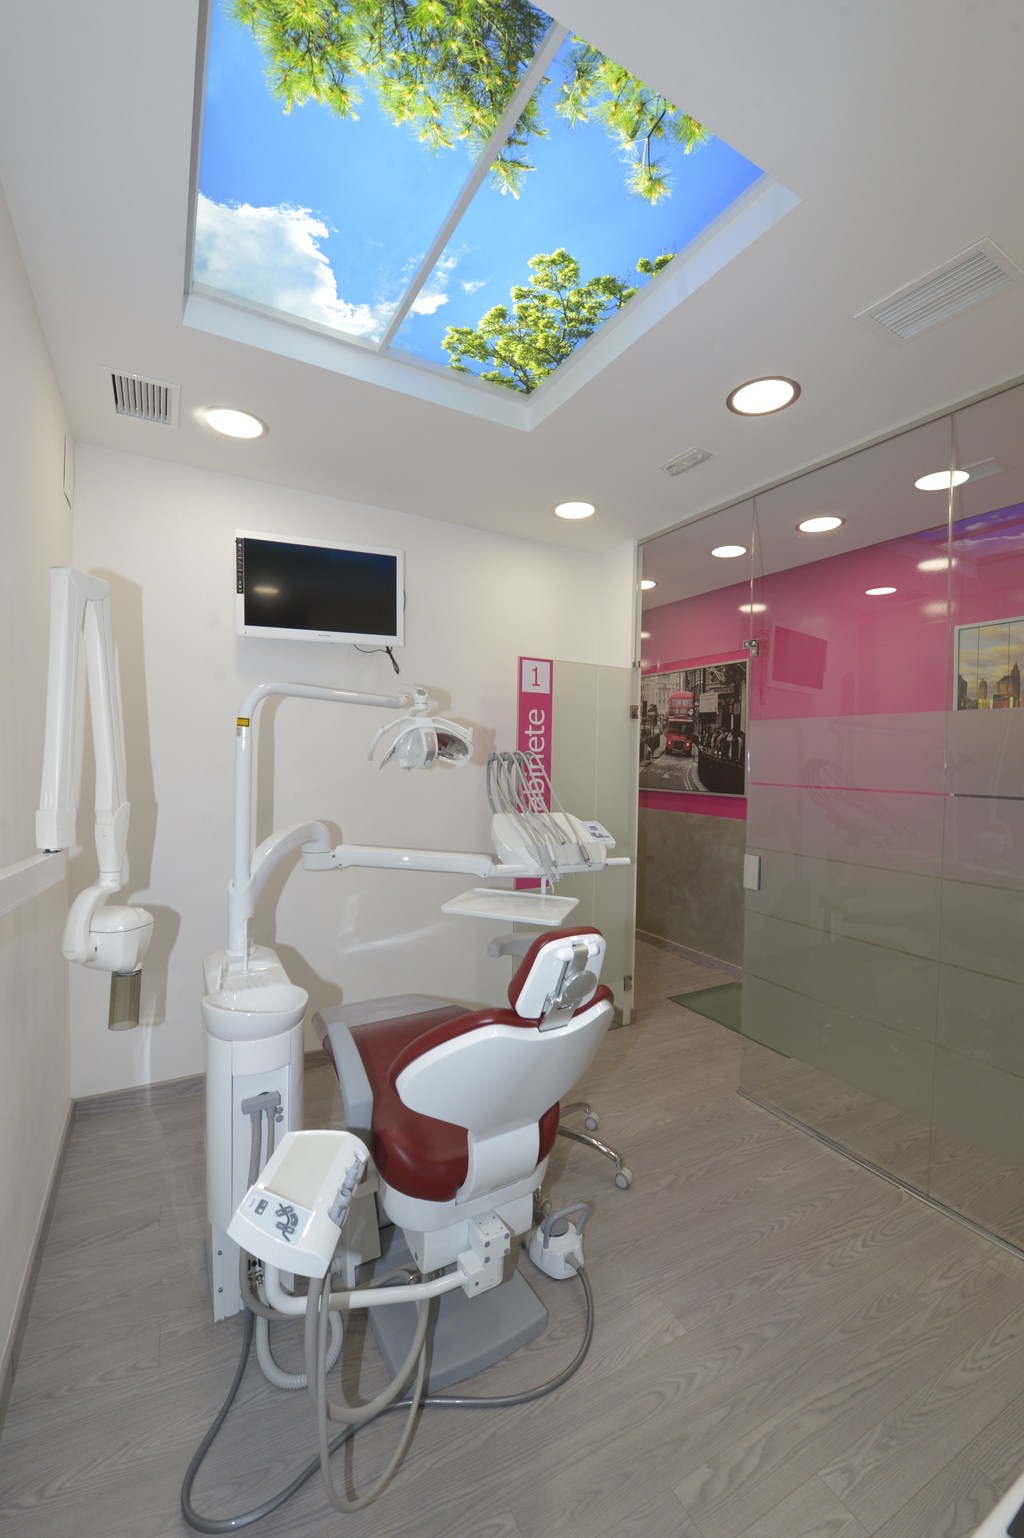 , implanta dental glorieta bilbao madrid